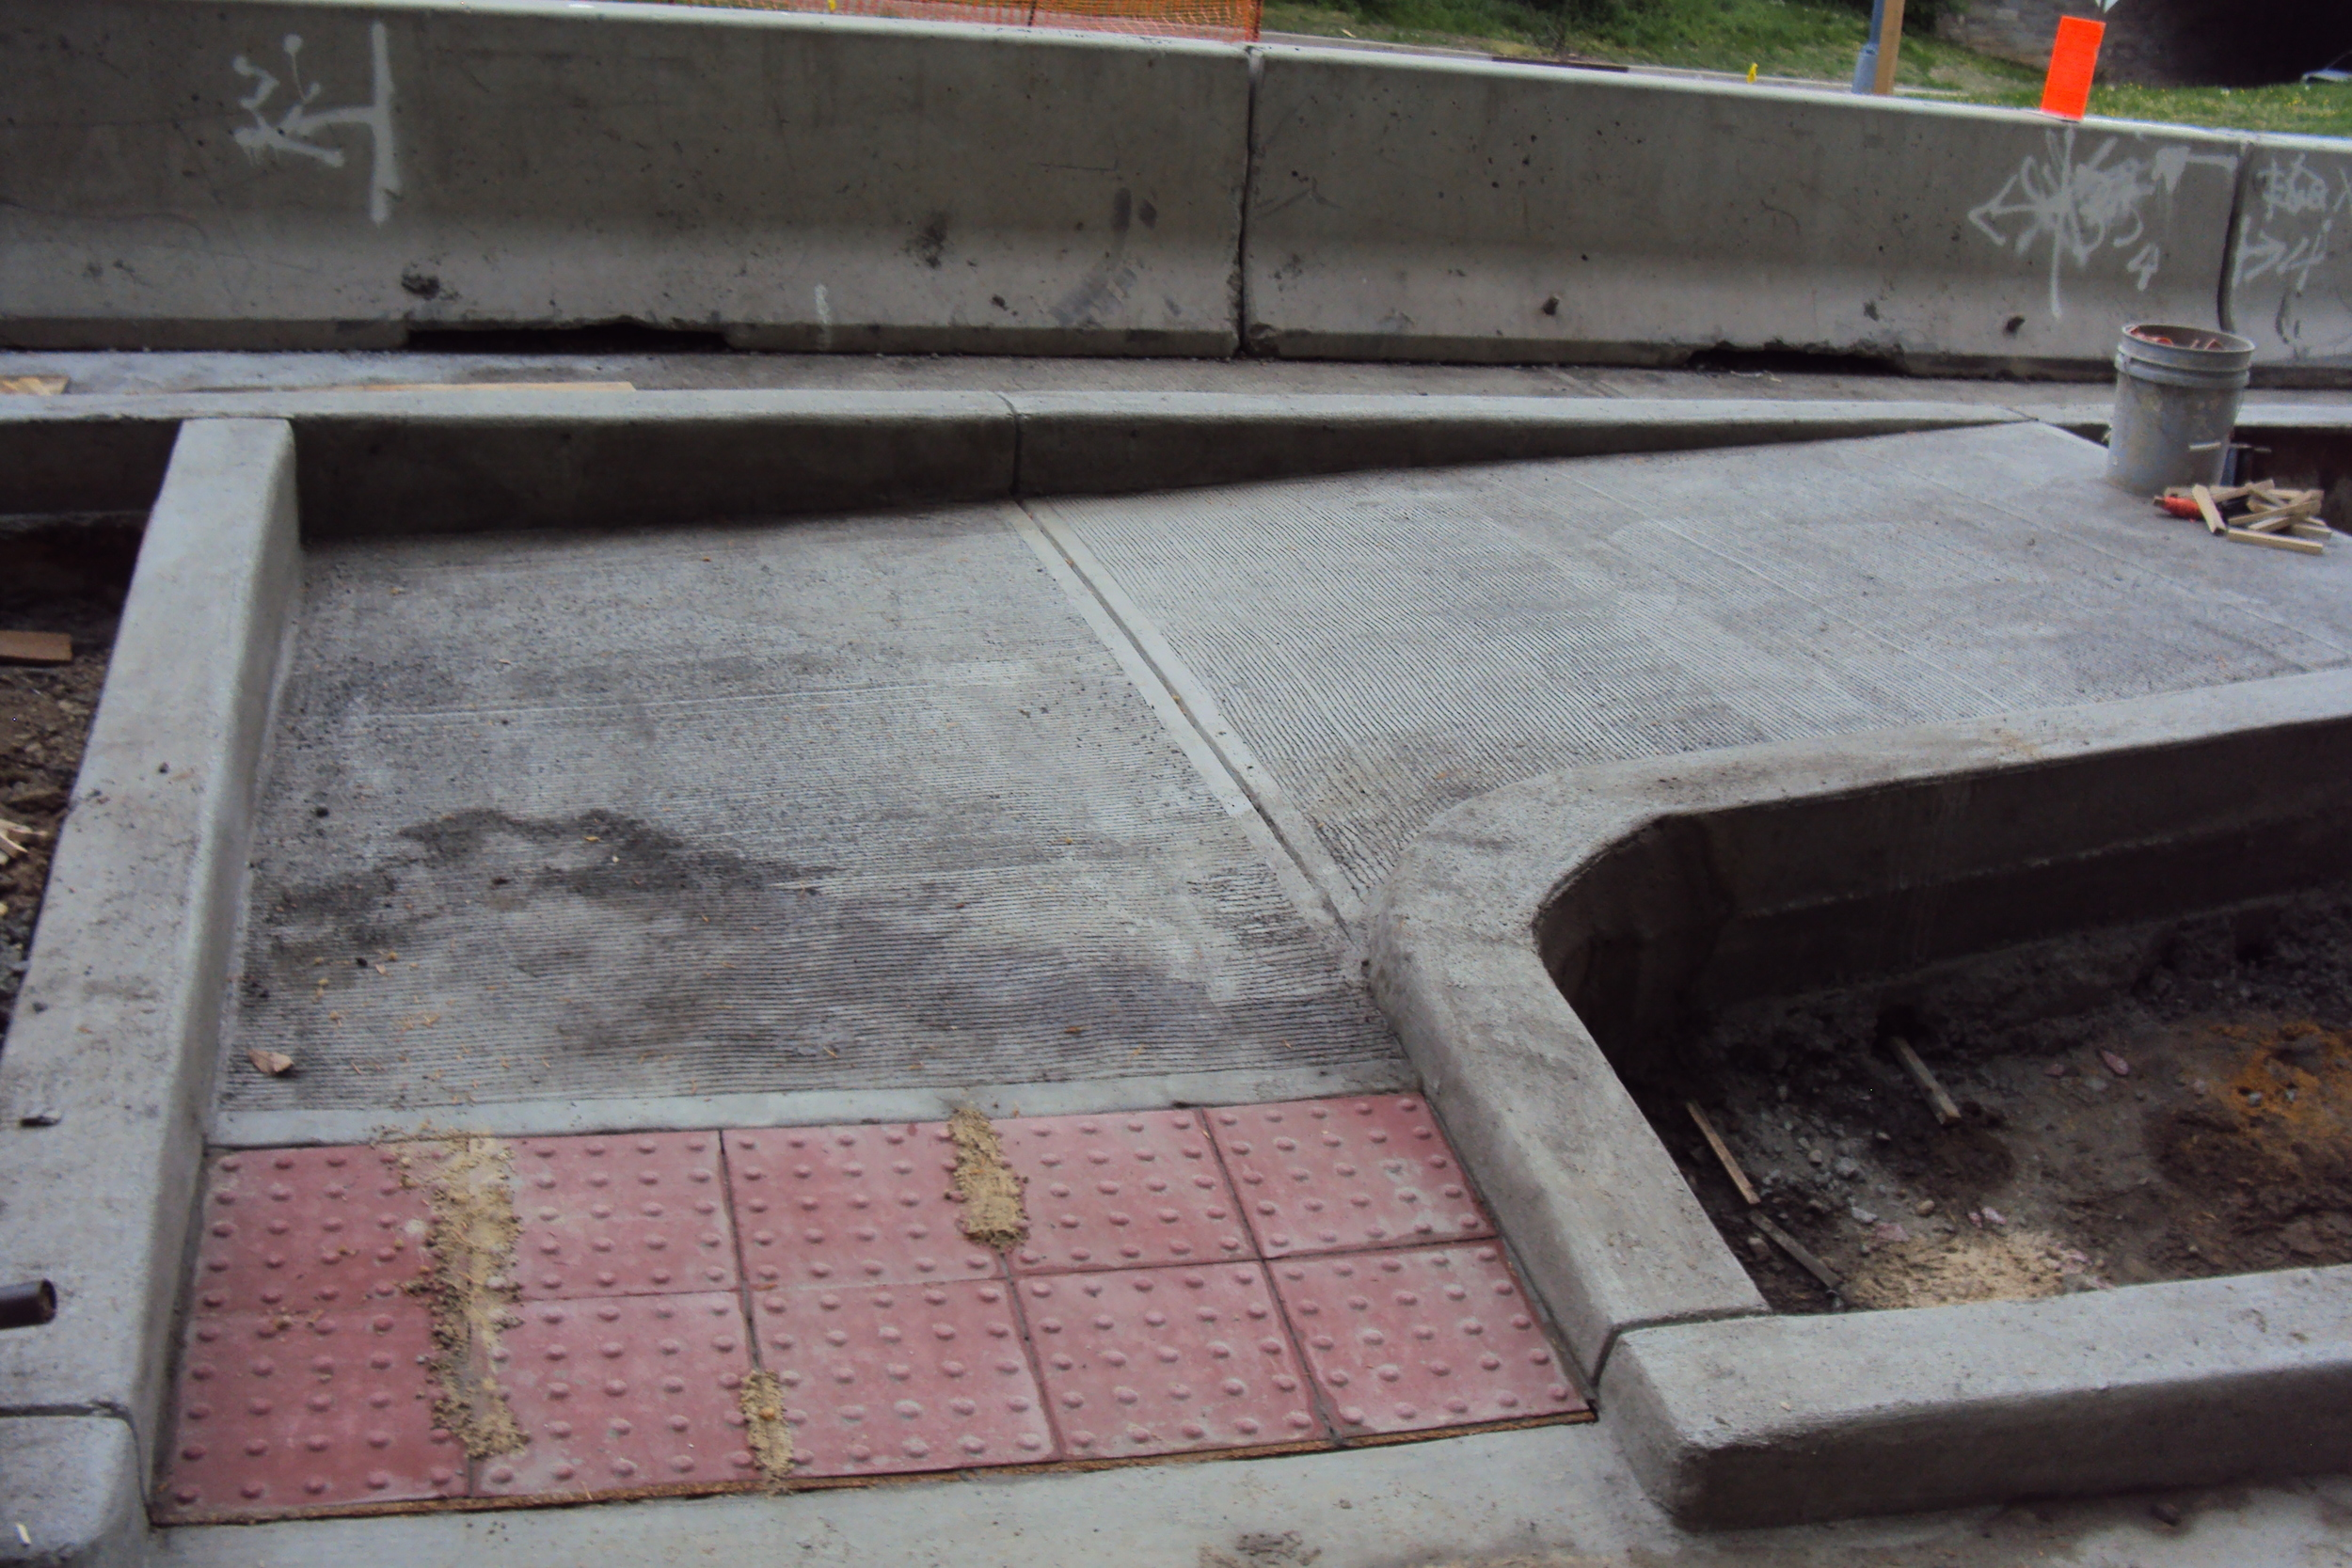 Paver joints filled and sealed to provide a tight fit